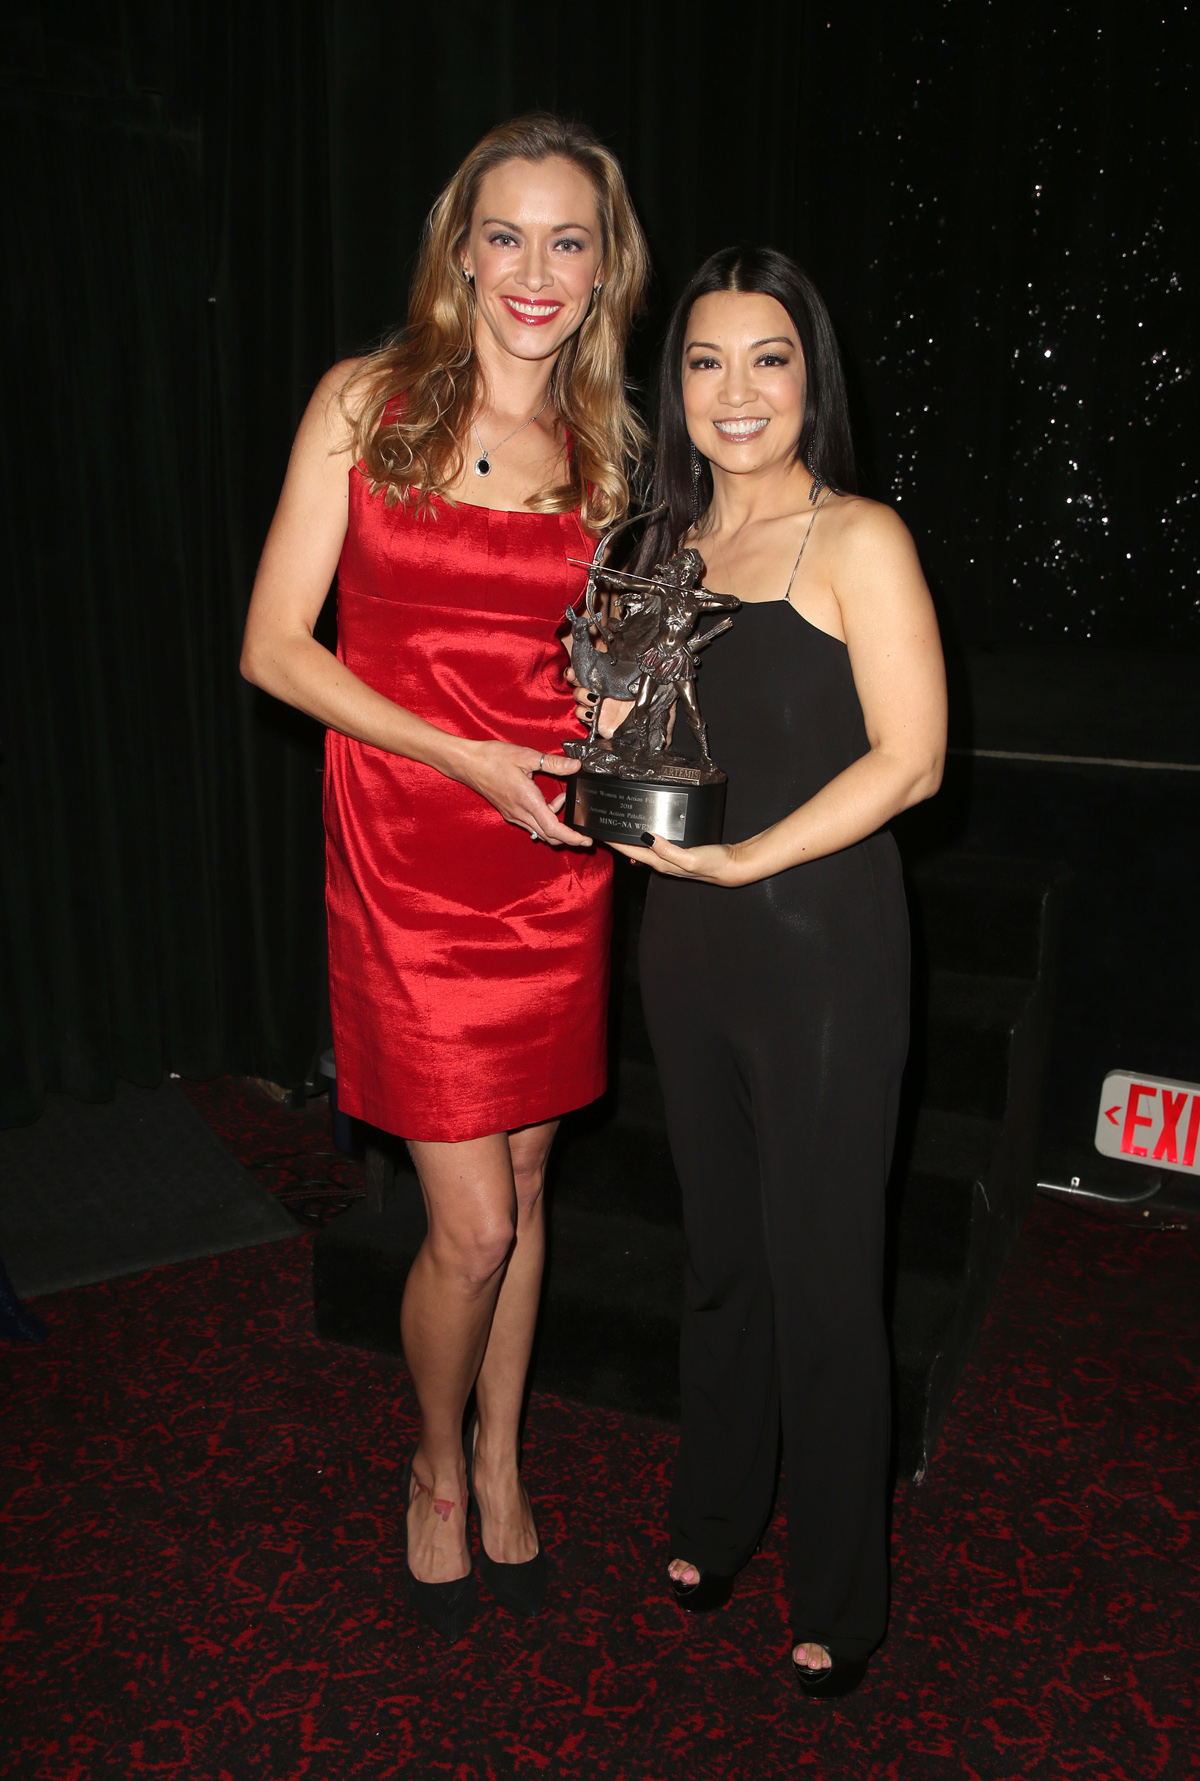 BEVERLY HILLS, CA - APRIL 26: Kristanna Loken, Ming-Na Wen, at the 2018 Artemis Awards Gala at the Ahrya Fine Arts Theater in Beverly Hills, California on April 26, 2018. Credit: Faye Sadou/MediaPunch